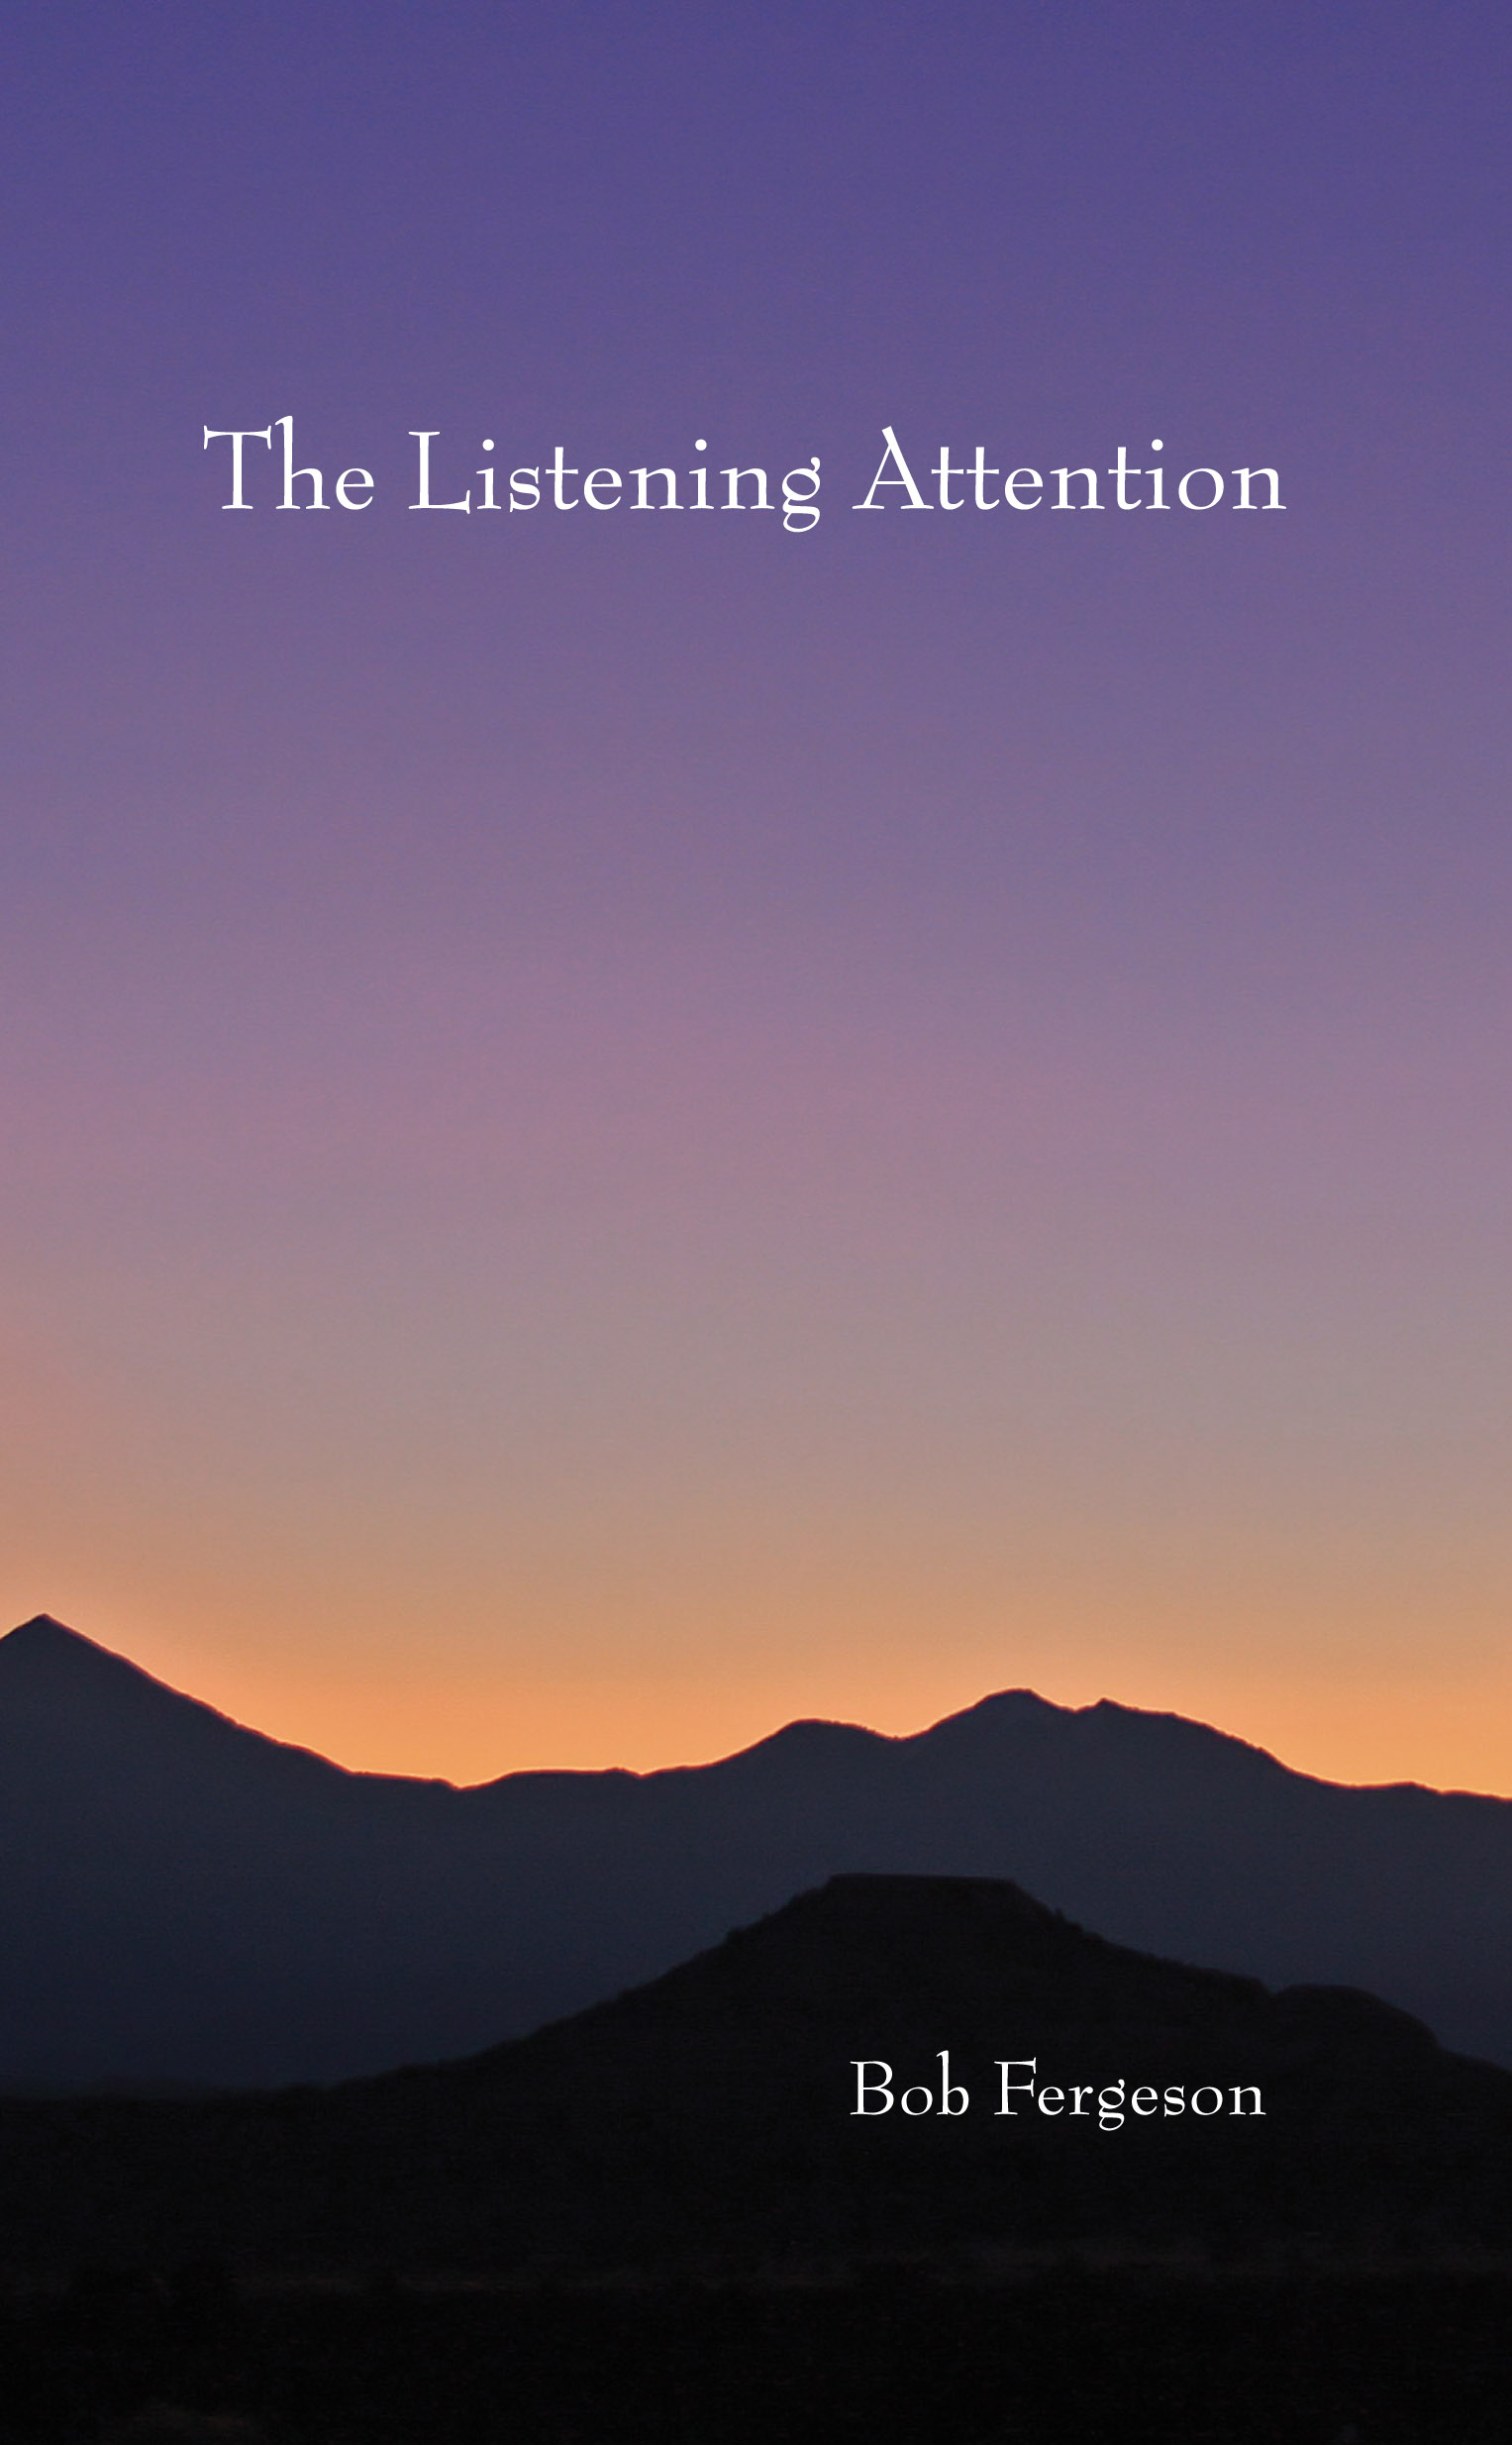 The Listening Attention